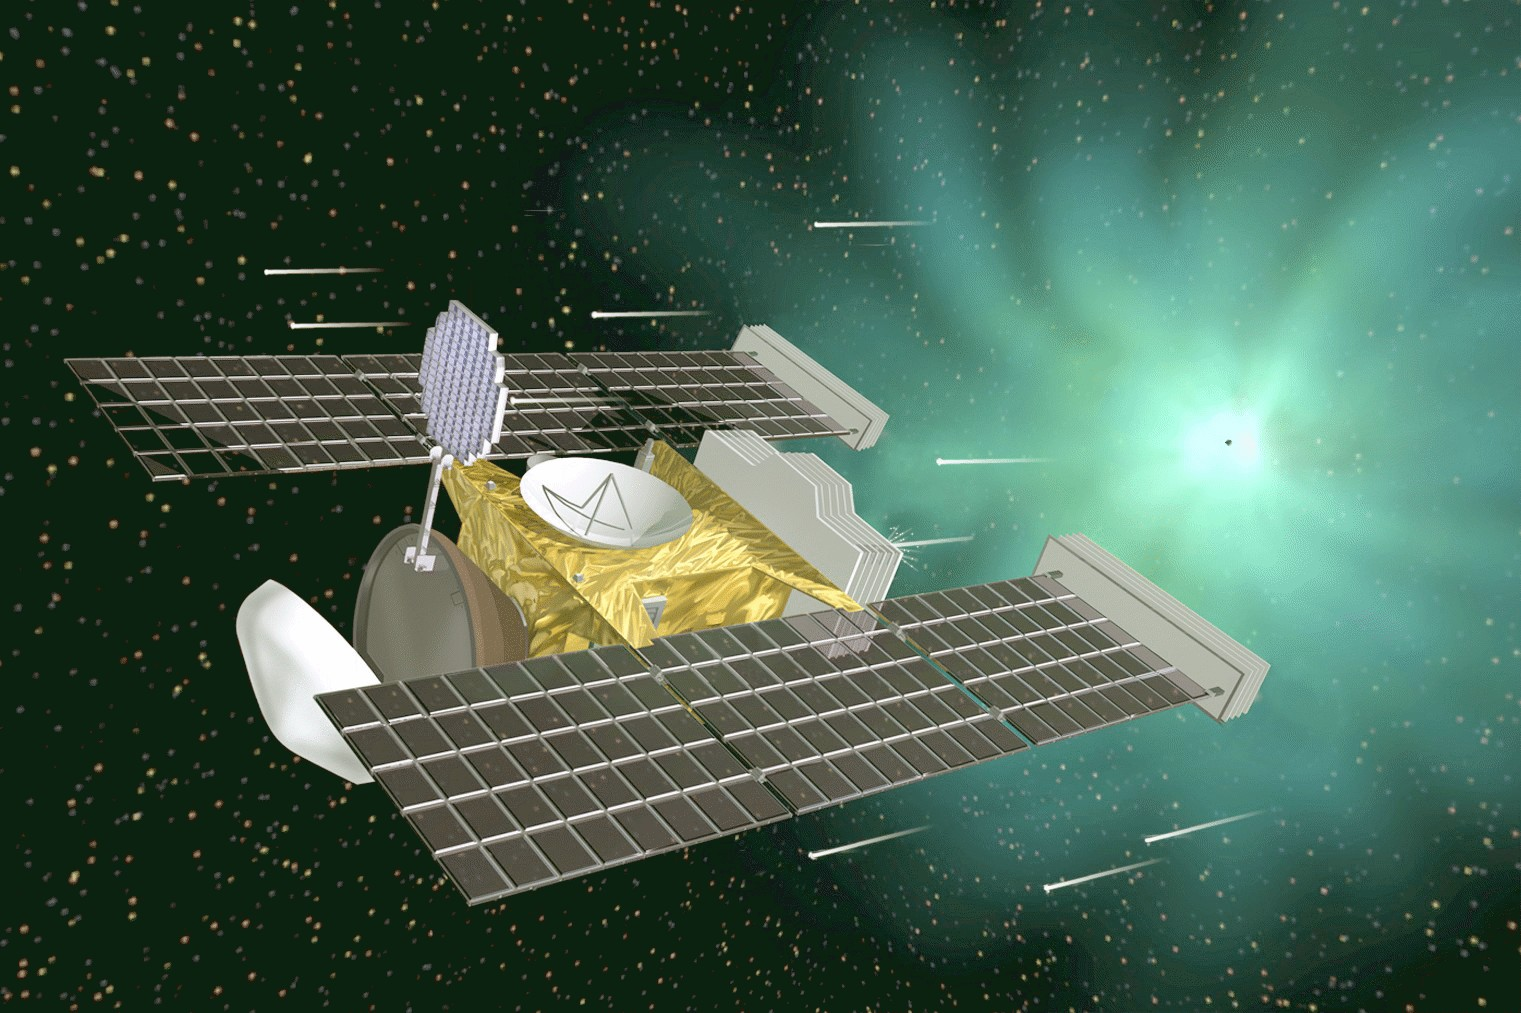 Spacecraft gather dust that come from outside solar system